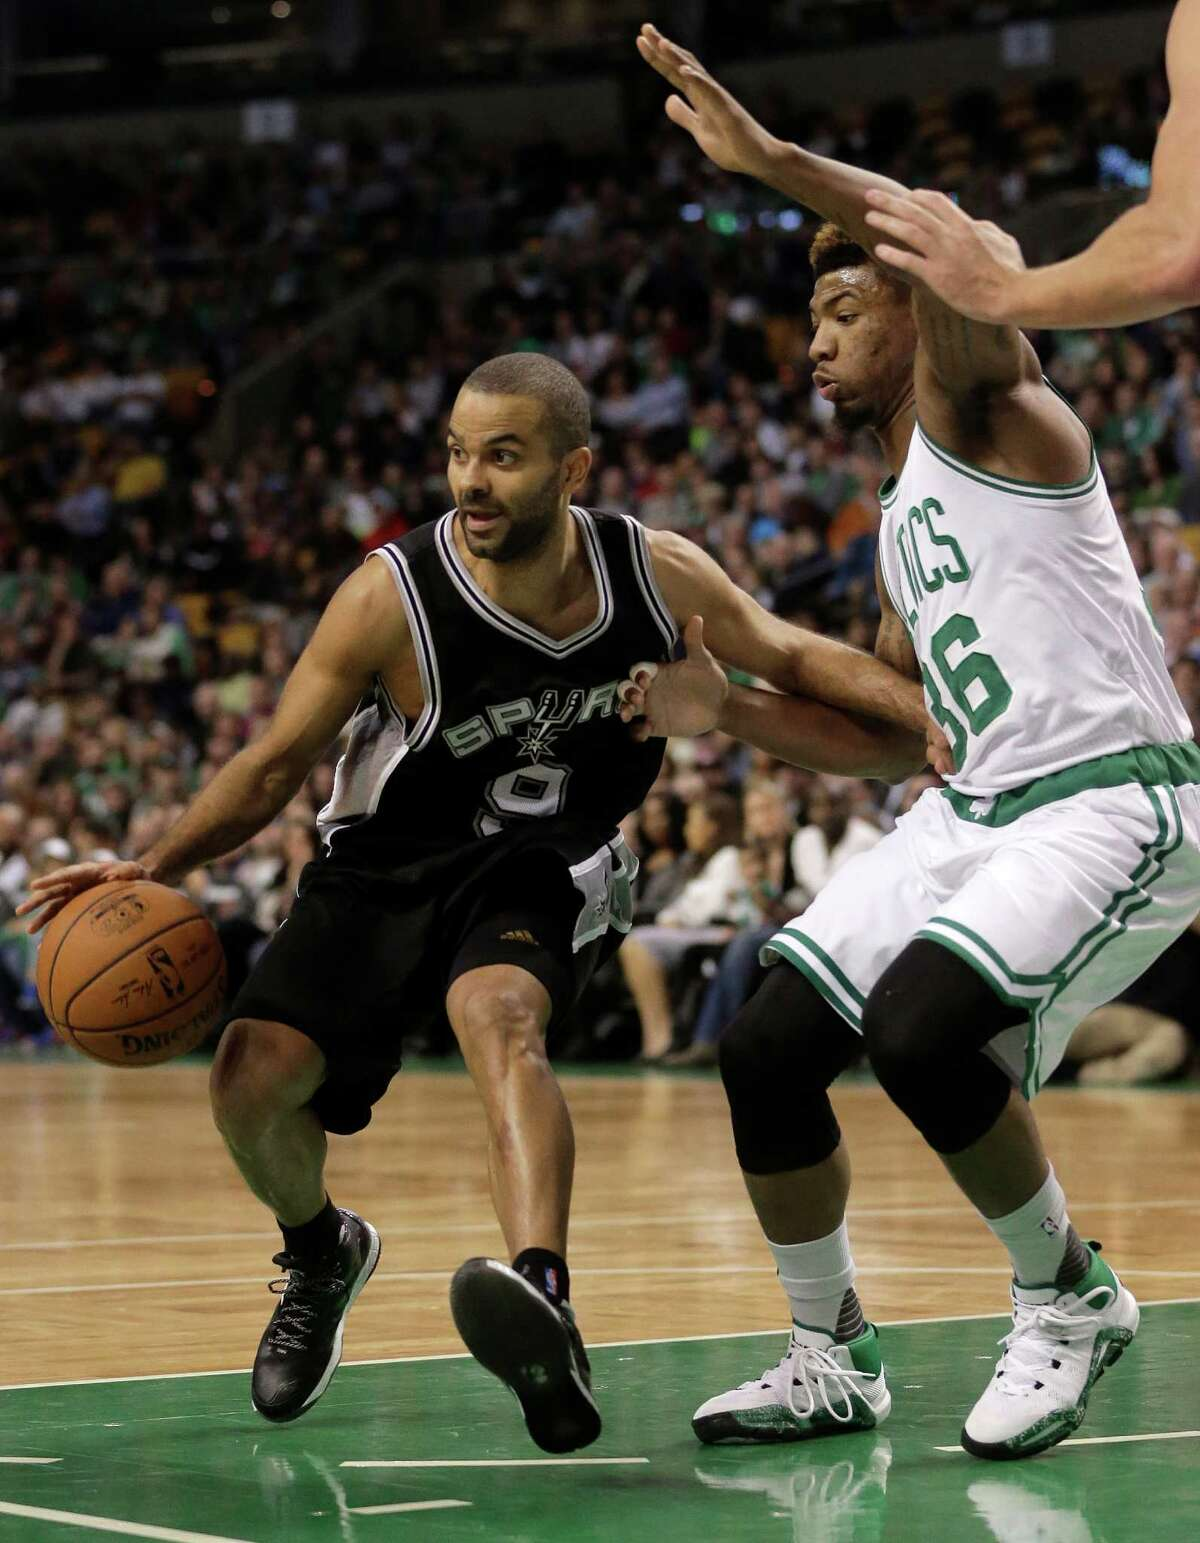 San Antonio Spurs guard Tony Parker, of France, left, drives toward the basket past Boston Celtics guard Marcus Smart, right, in the first quarter of an NBA basketball game, Sunday, Nov. 1, 2015, in Boston. (AP Photo/Steven Senne)